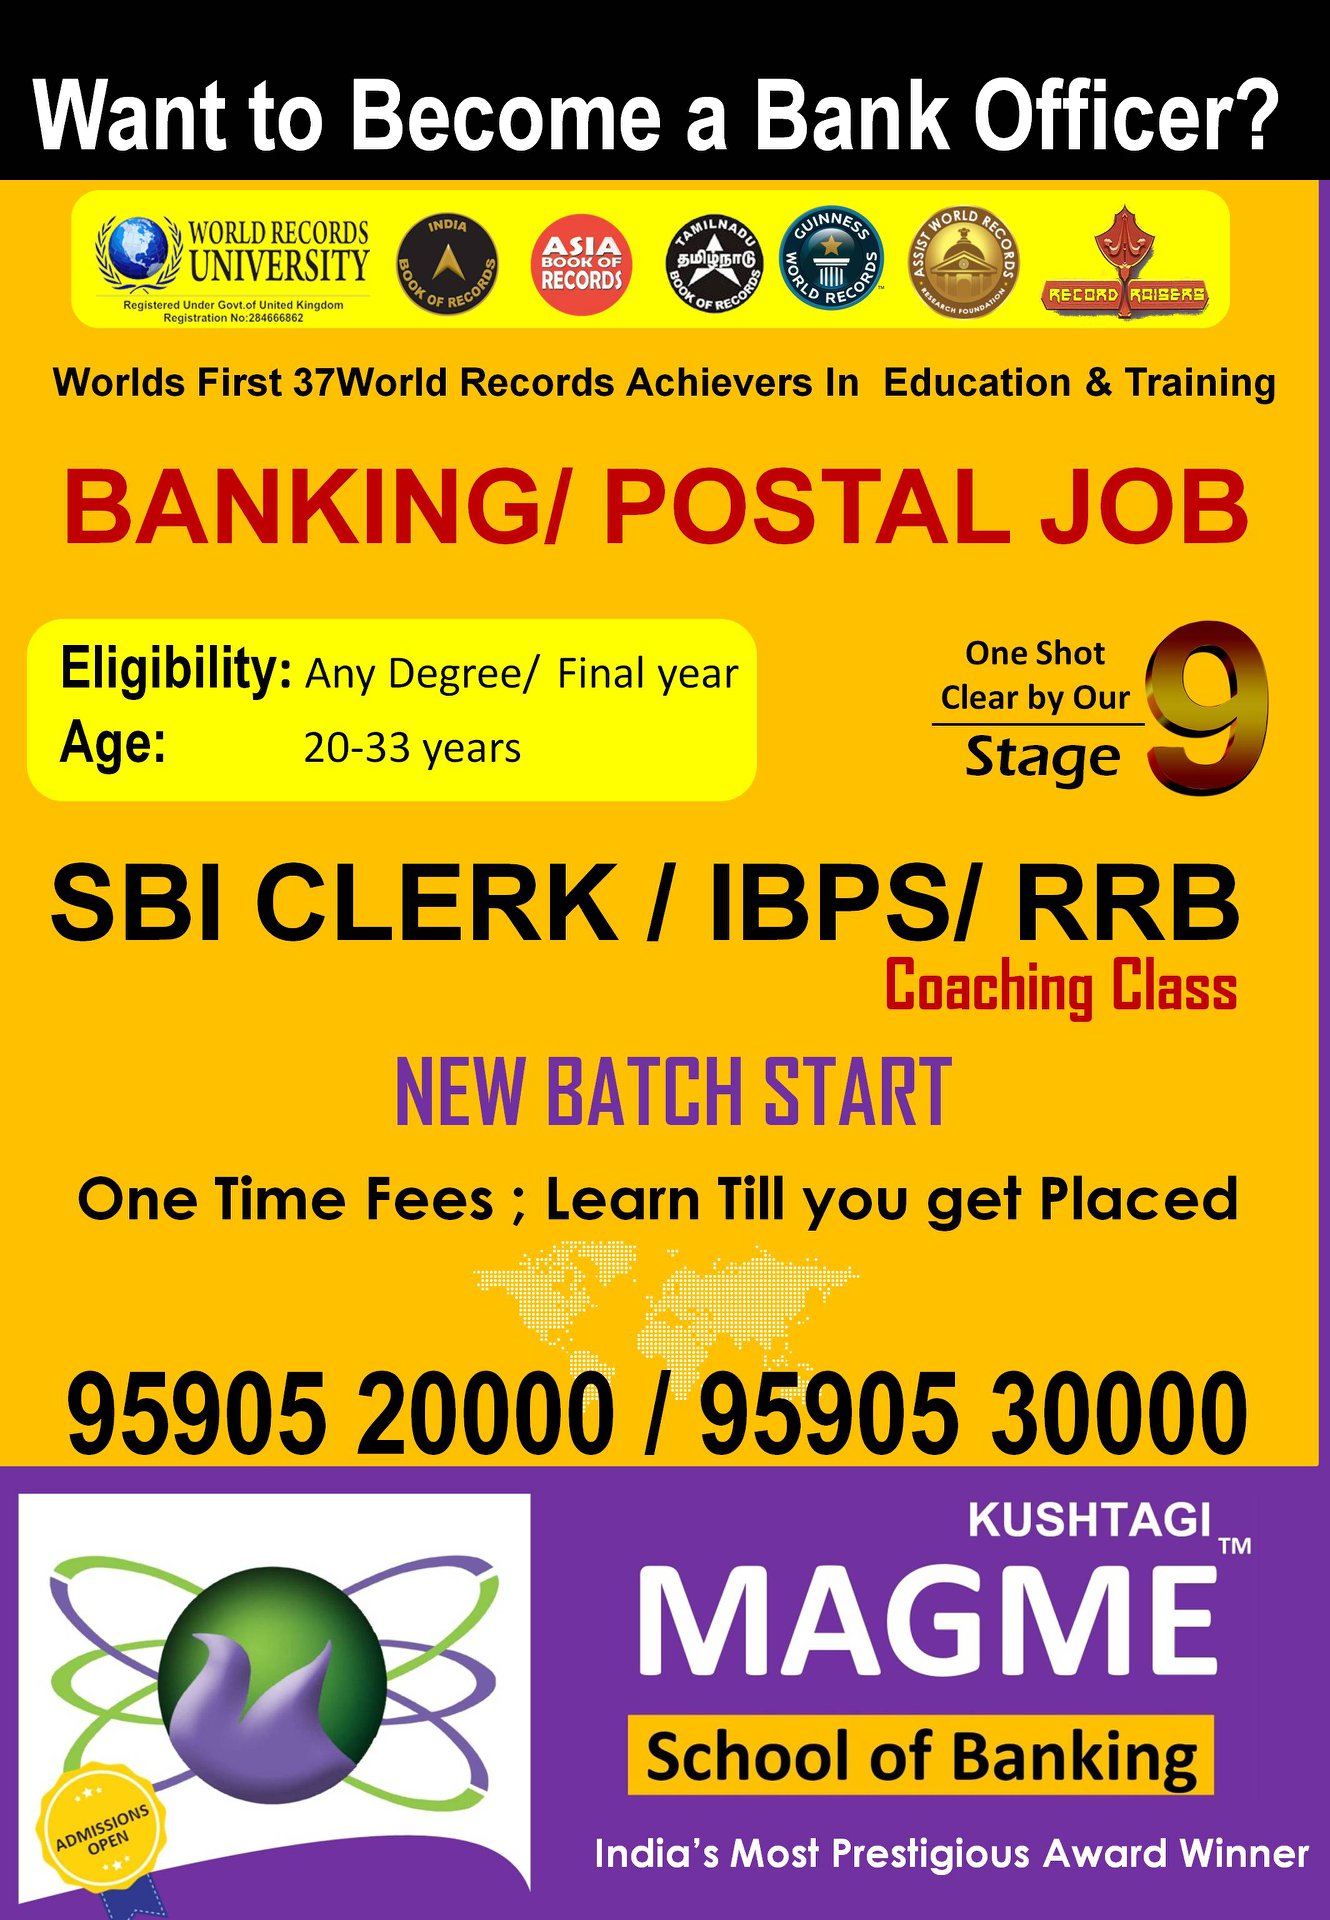 Image for  Best coaching classes for competitive exams - Magme School of Banking